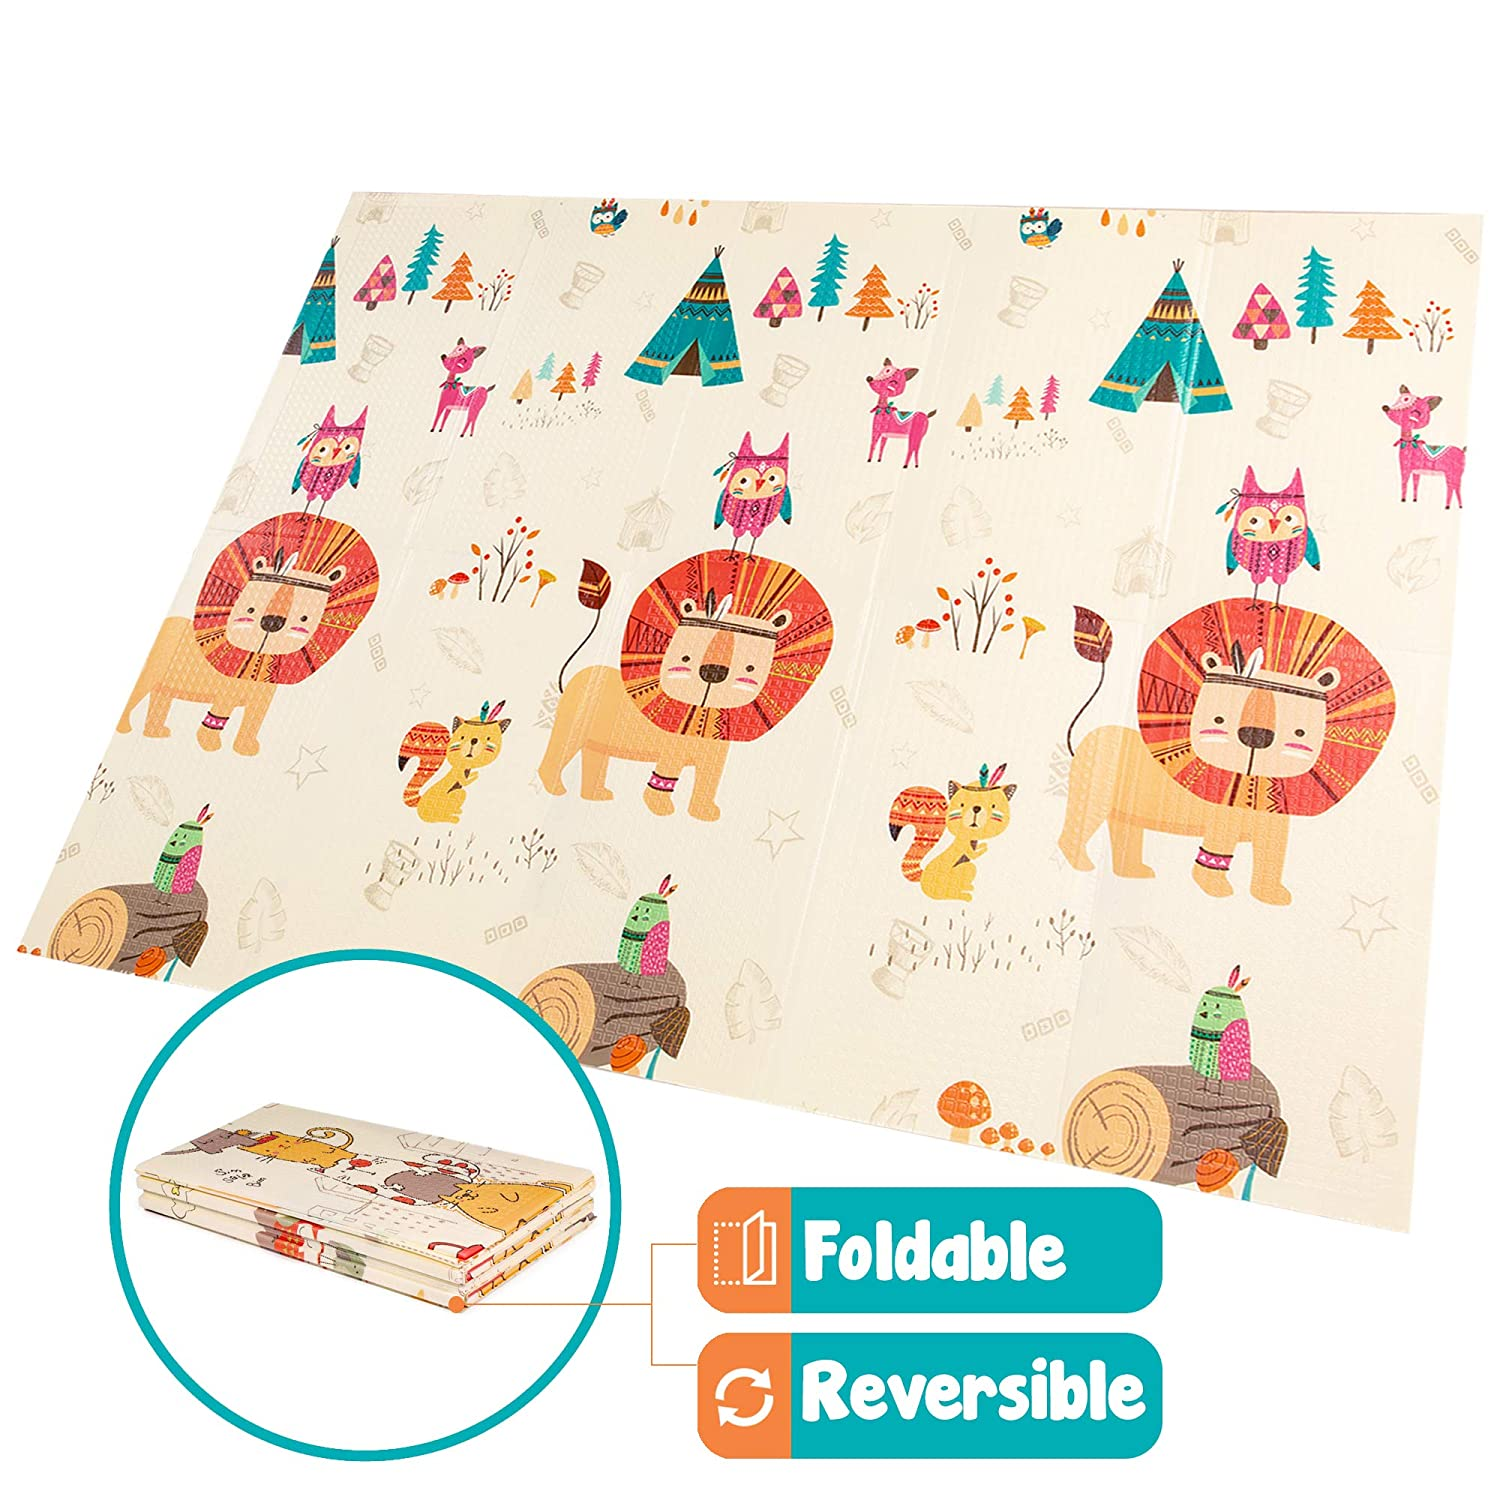 78x61x0.4in Portable Outdoor or Indoor Use Extra Large Baby Crawling Mat XPE and BPA Free Reversible Unicorn Playmat Non Toxic Waterproof for Kids Toddler Infants Foam Foldable Play Mat